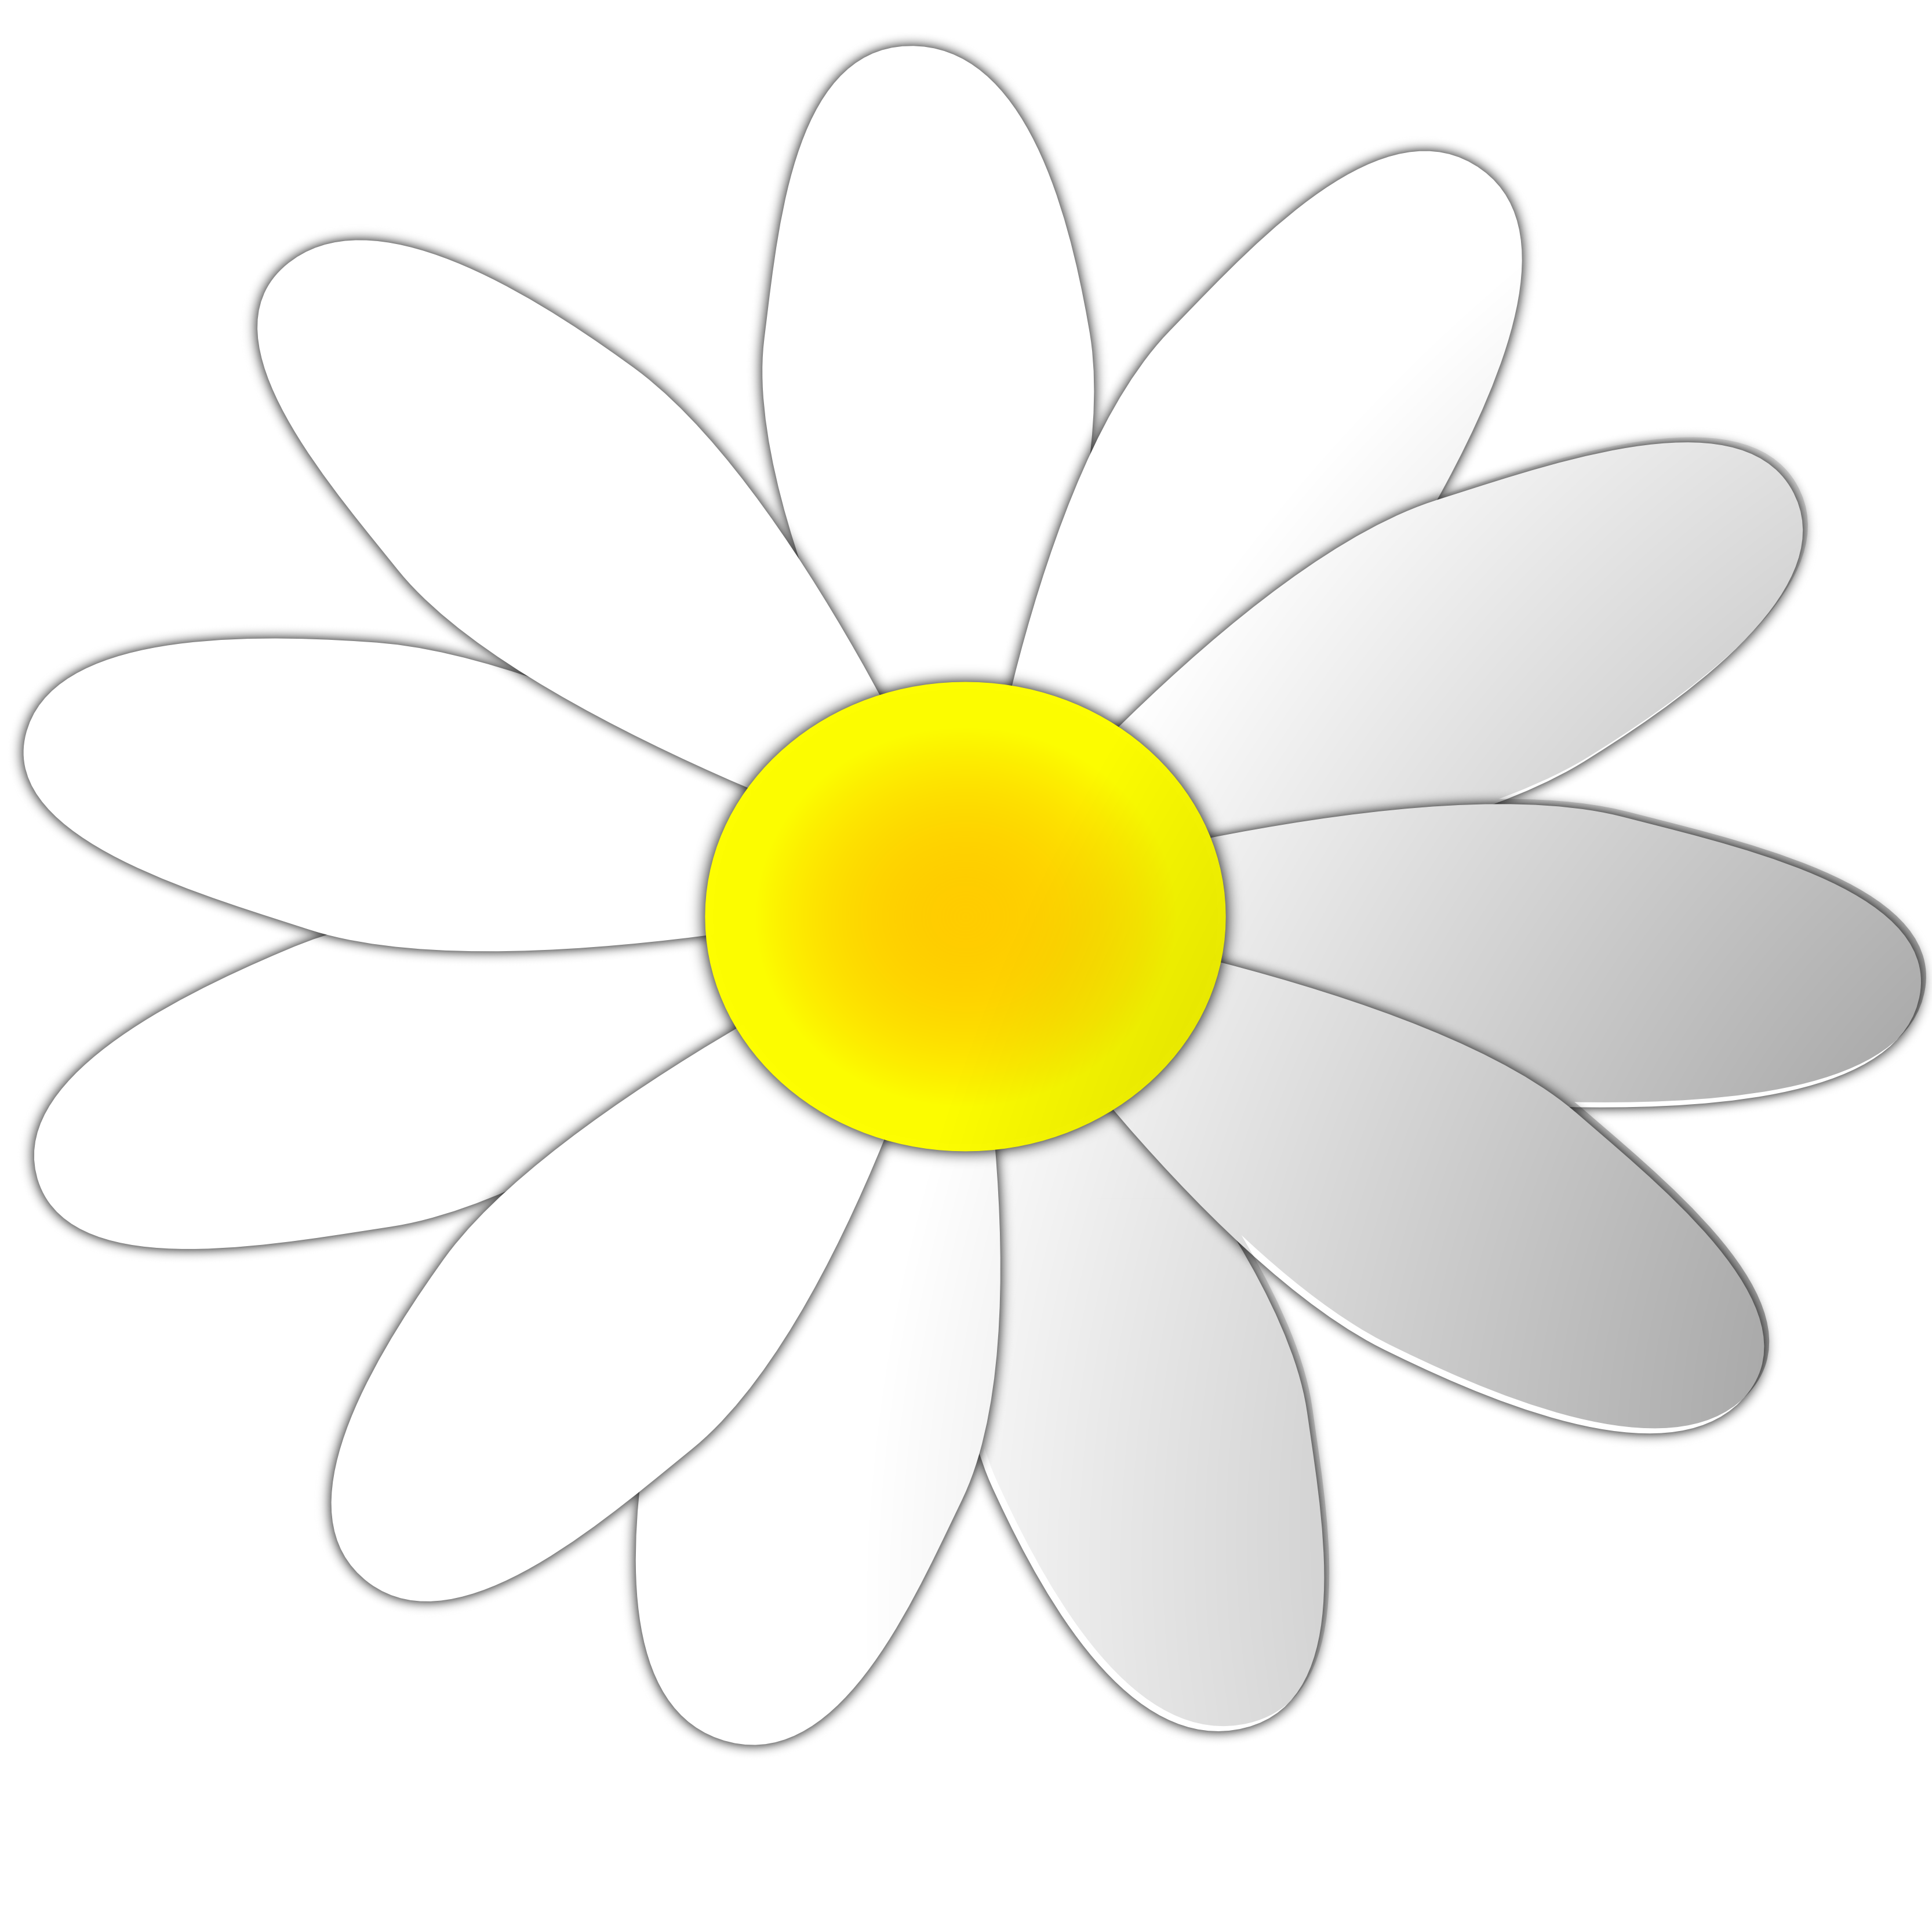 Daisies clipart marguerite daisy. Free images download clip